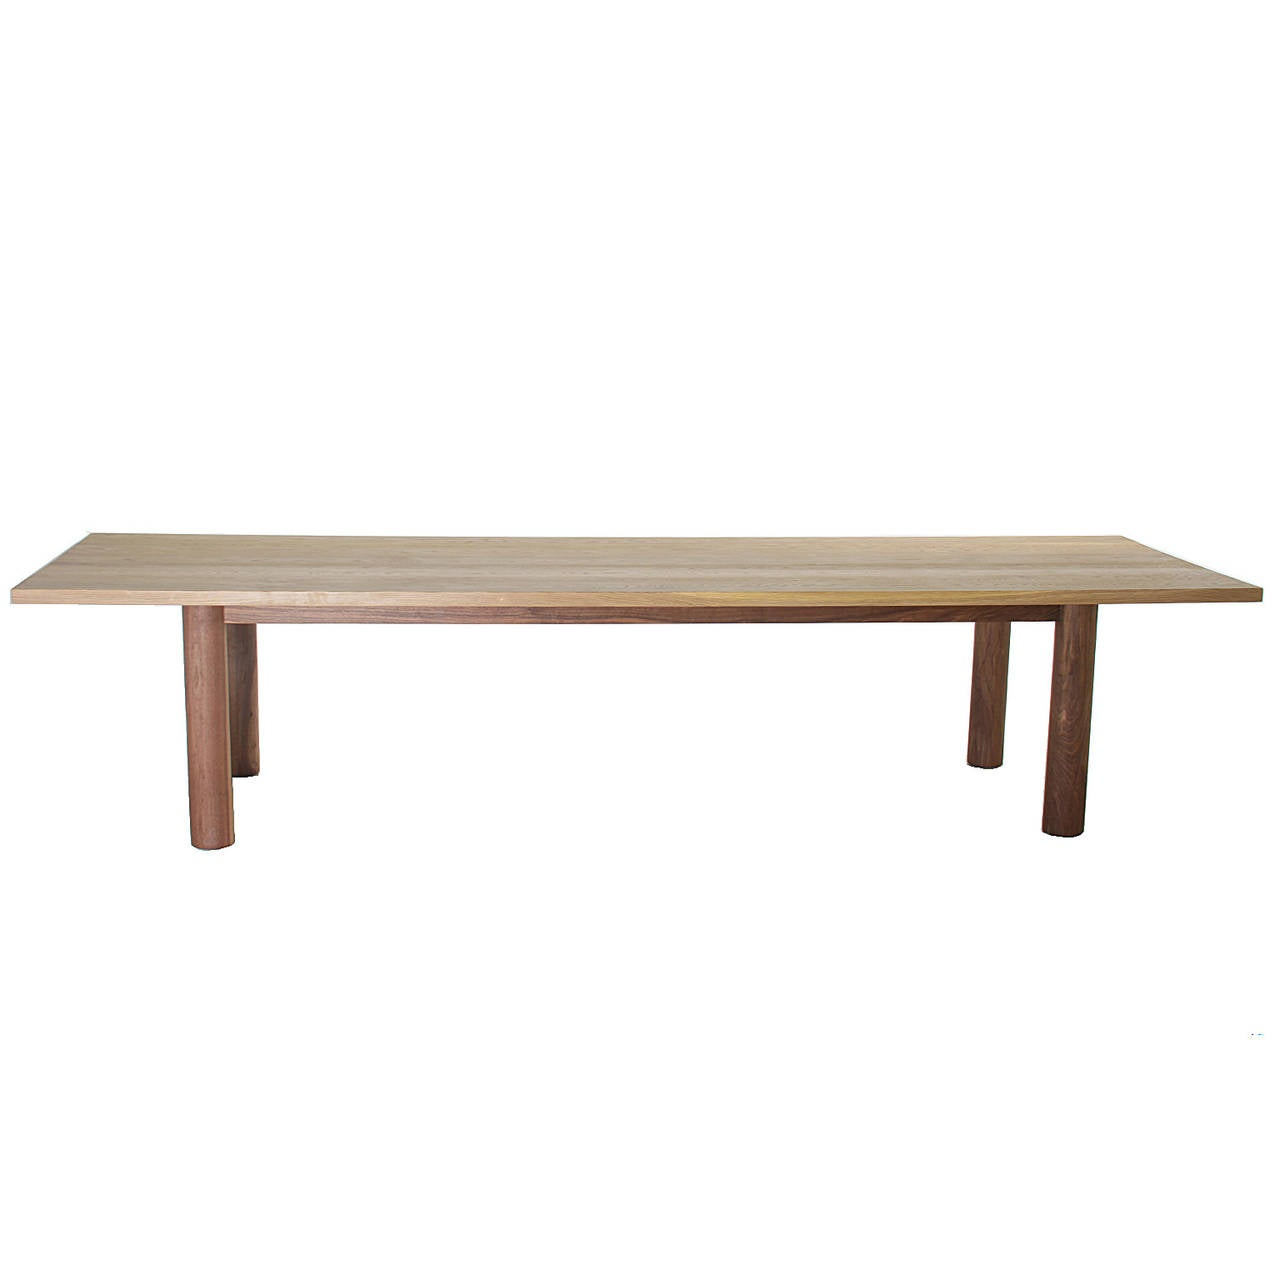 Oak Dining Table with Walnut Base By Thomas Hayes Studio  : 4l from www.1stdibs.com size 1280 x 1280 jpeg 32kB